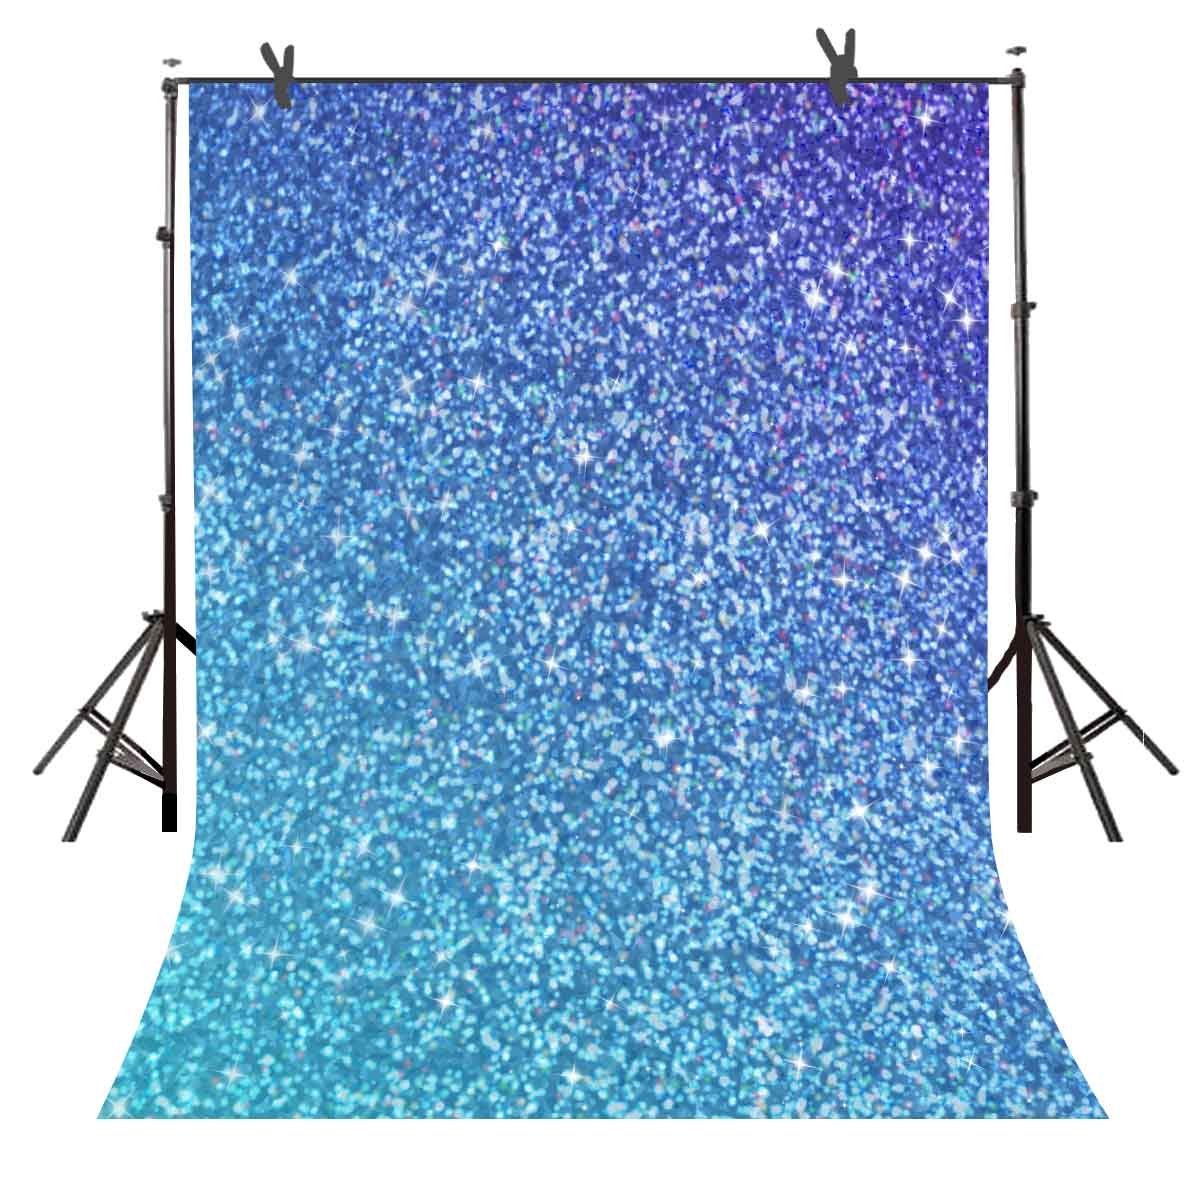 Well Wreapped Photography Backdrops 6ftx9ft Navy Blue Backdrop Canon Mirrorless Eosm10 1545bk Dts Black Simple Style Background For Family Video